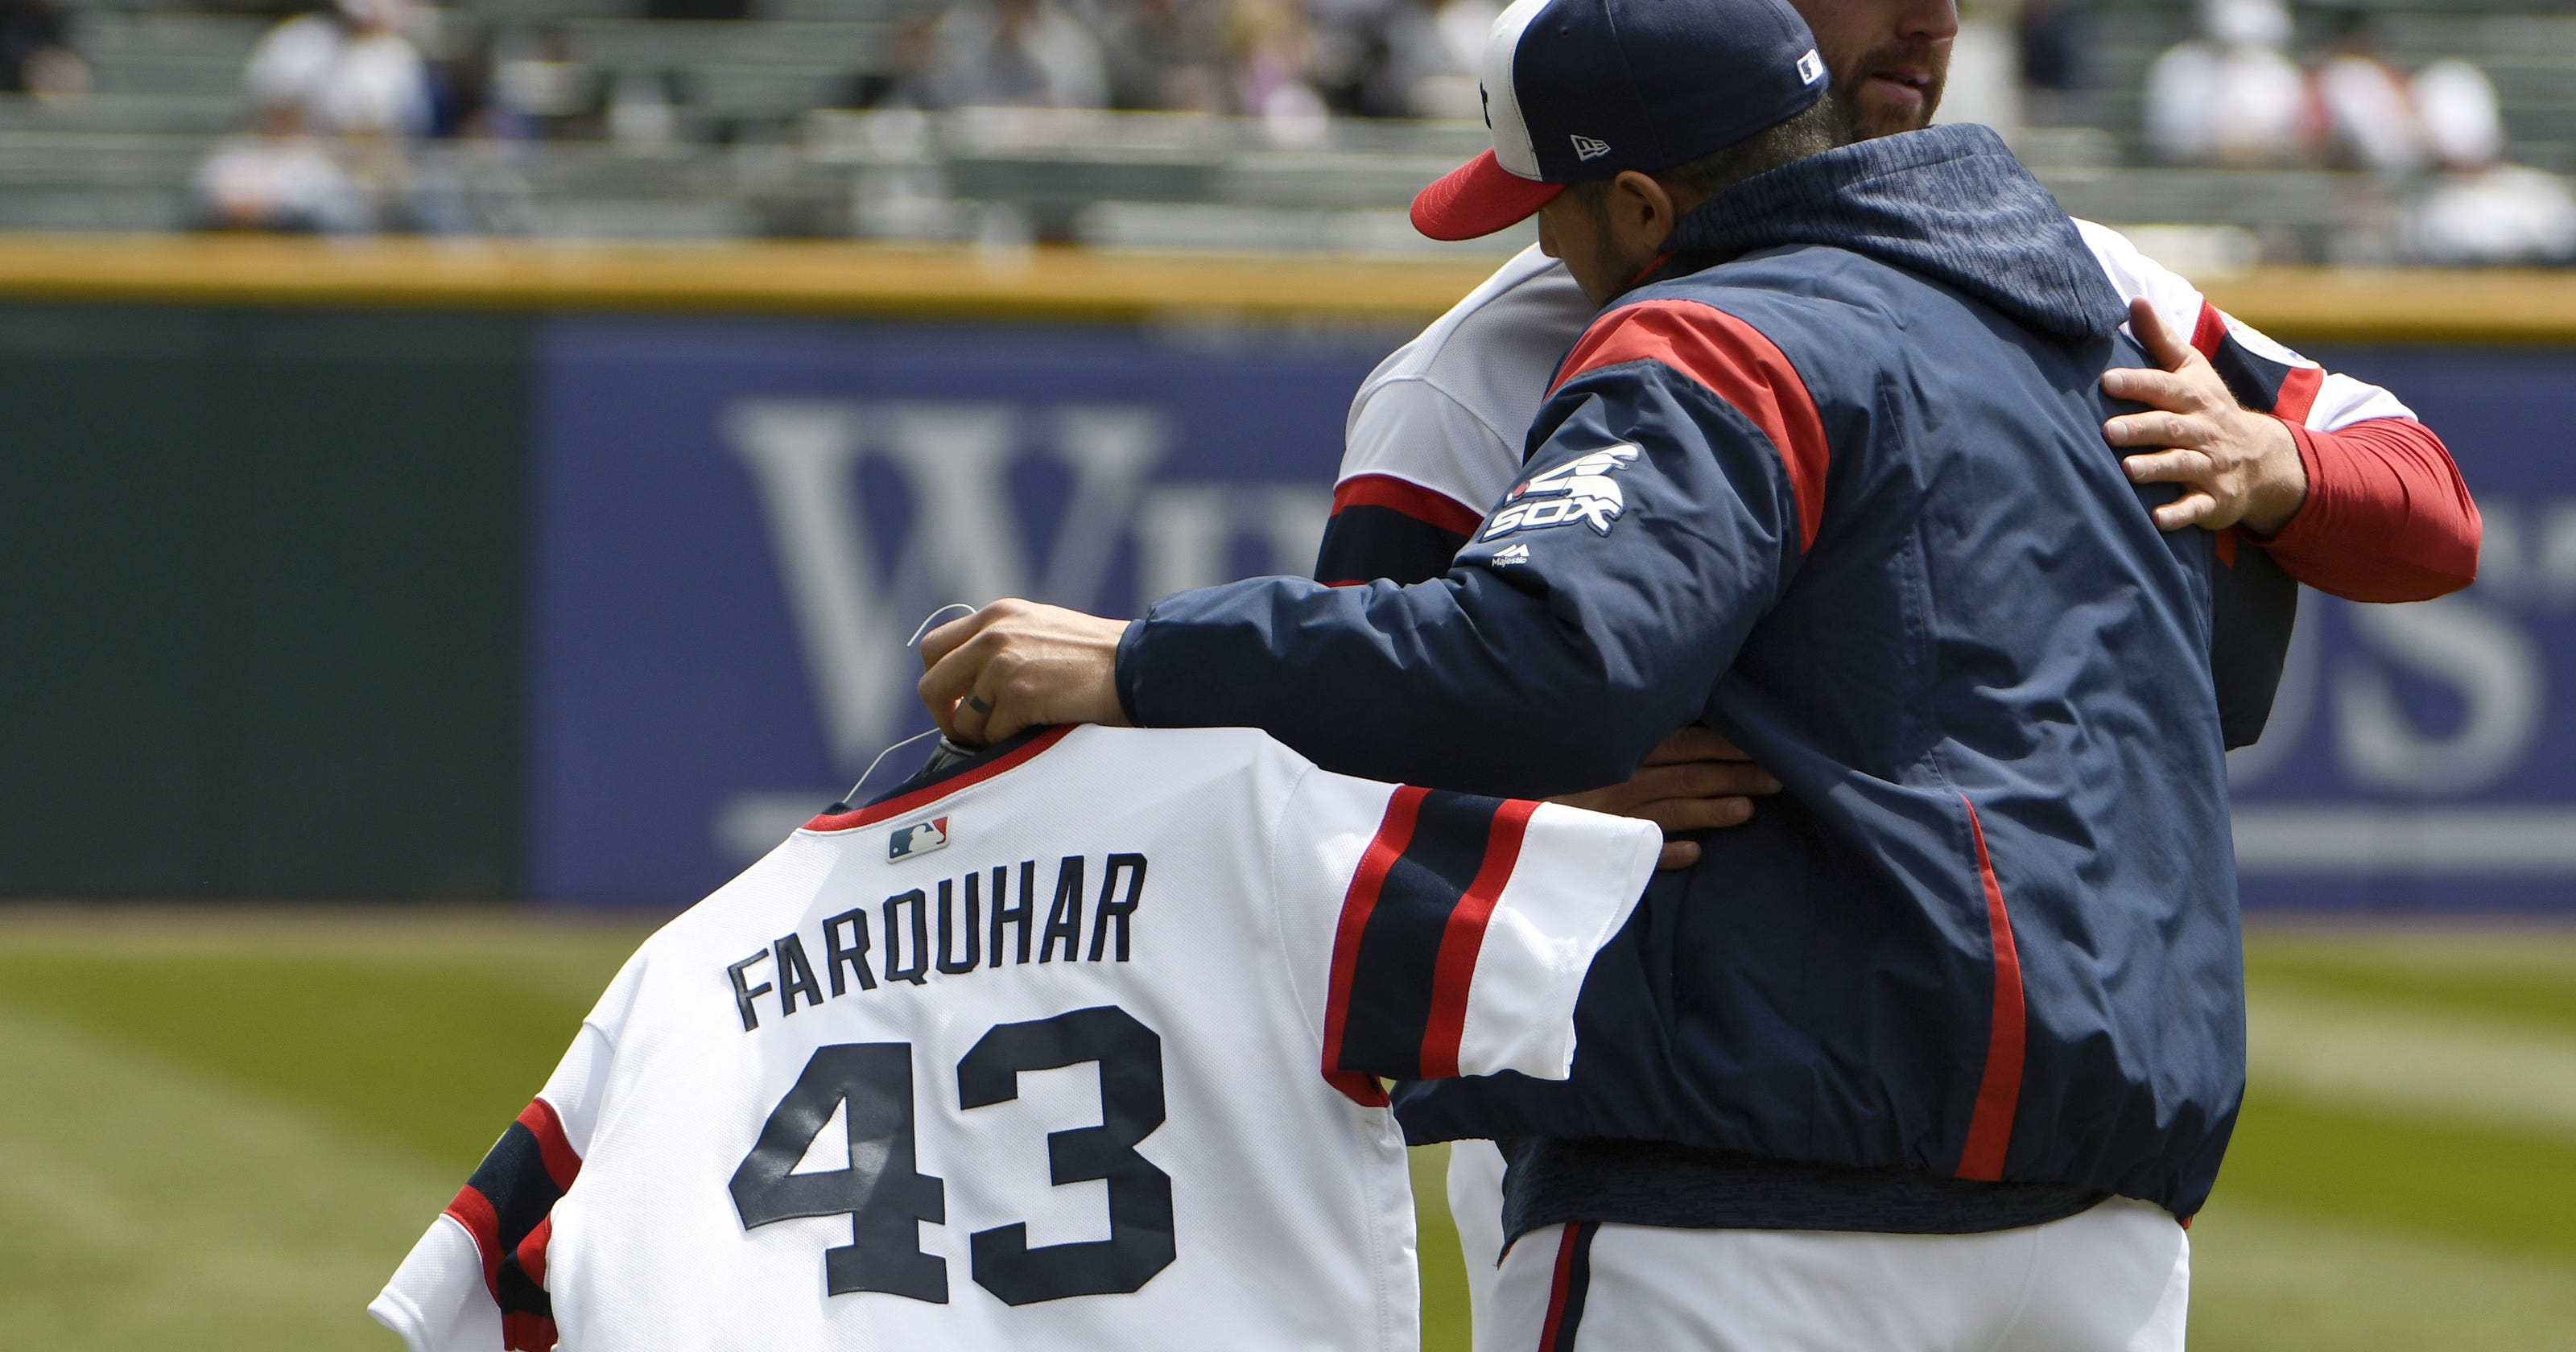 d29c0892998 Danny Farquhar fights for life as friends pray for White Sox pitcher